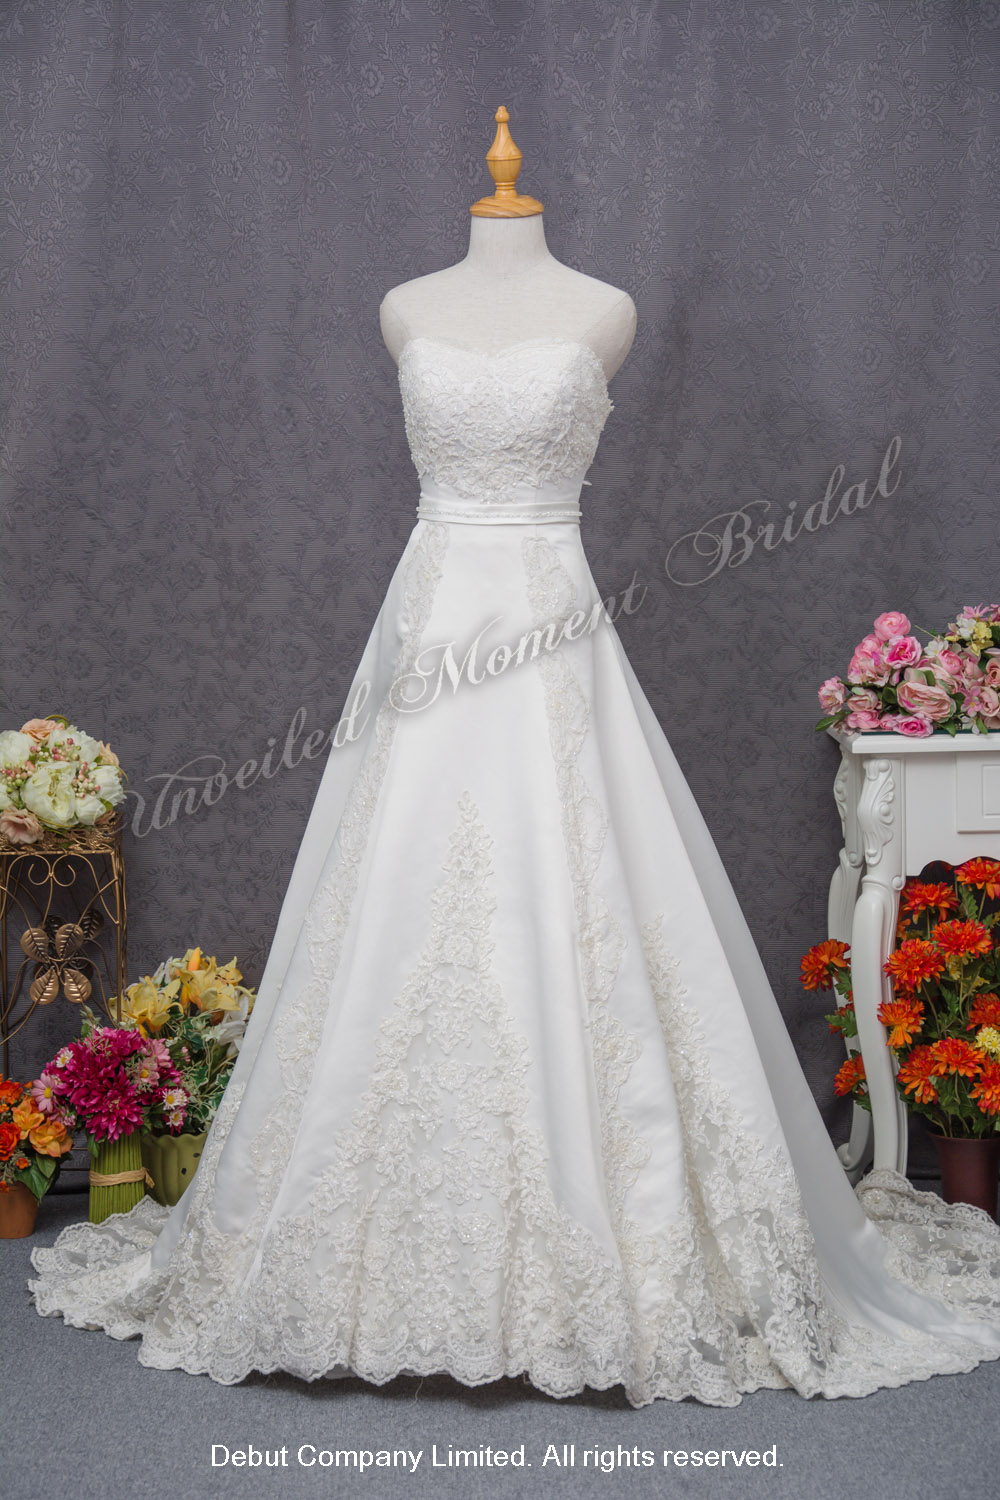 無肩帶low-cut, 心形胸, 蝴蝶結拖尾, 蕾絲花邊, A-line長拖尾婚紗 Strapless, A-line wedding gown with a sweetheart neckline, lace appliques, and an embellished lace chapel train and accentuated bow